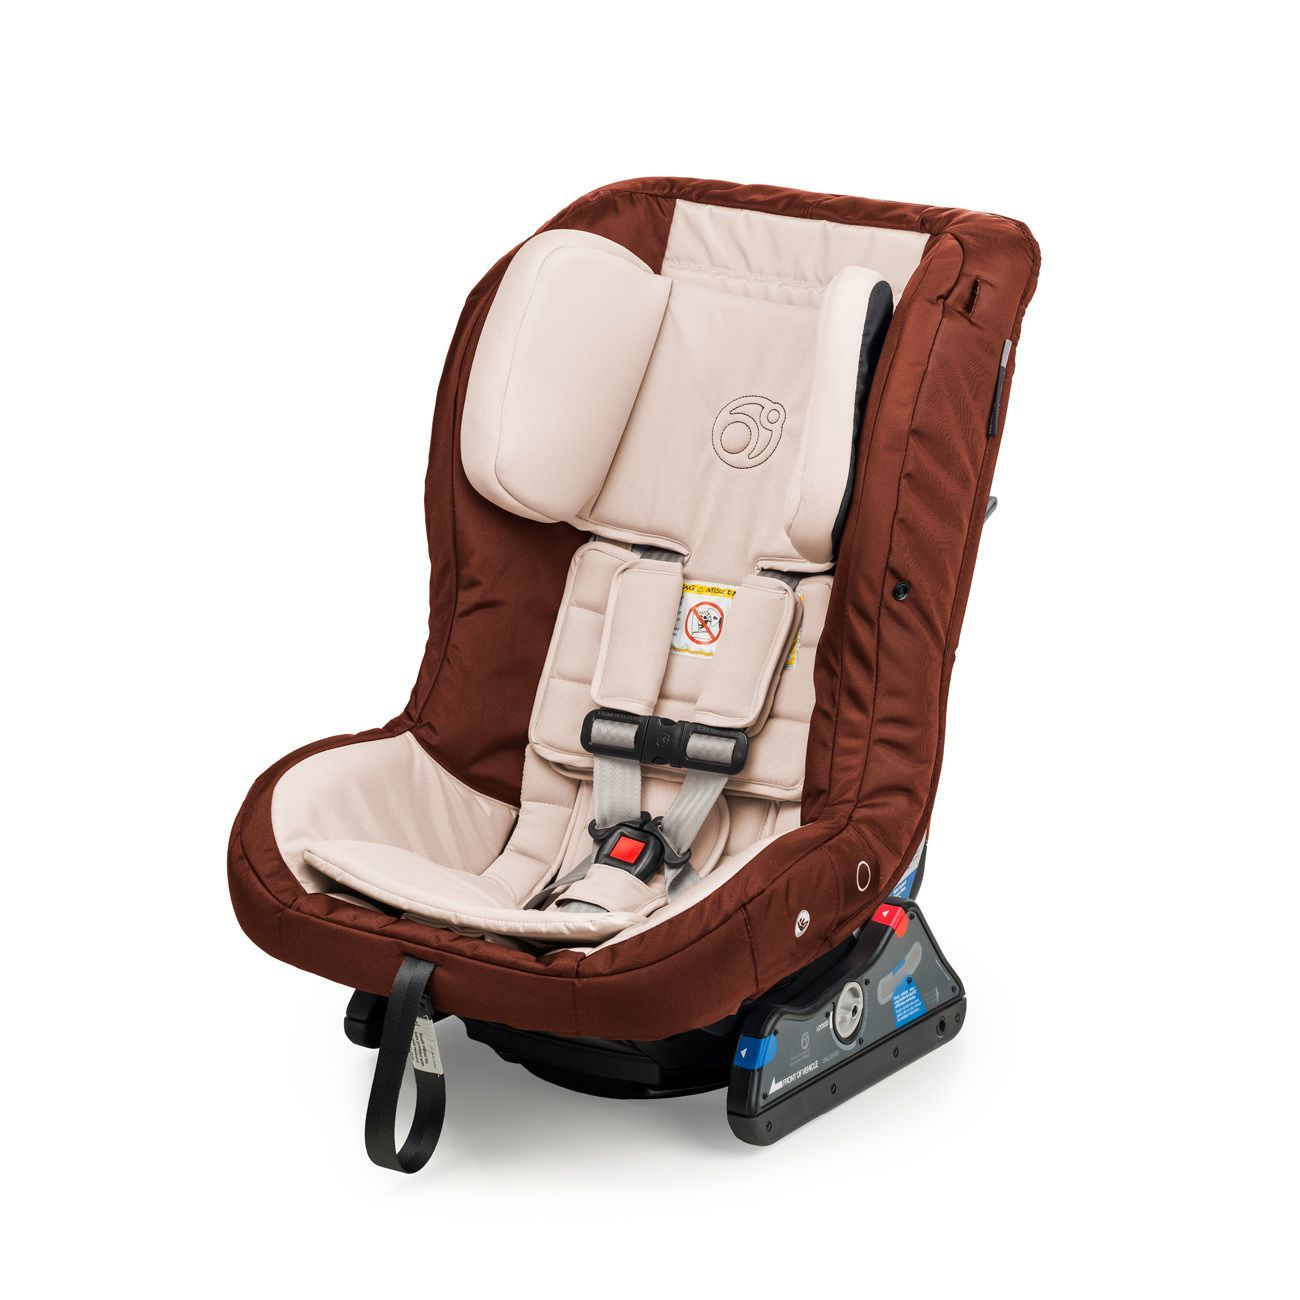 Car Seats for Toddlers That Turn Orbit Baby Baby car